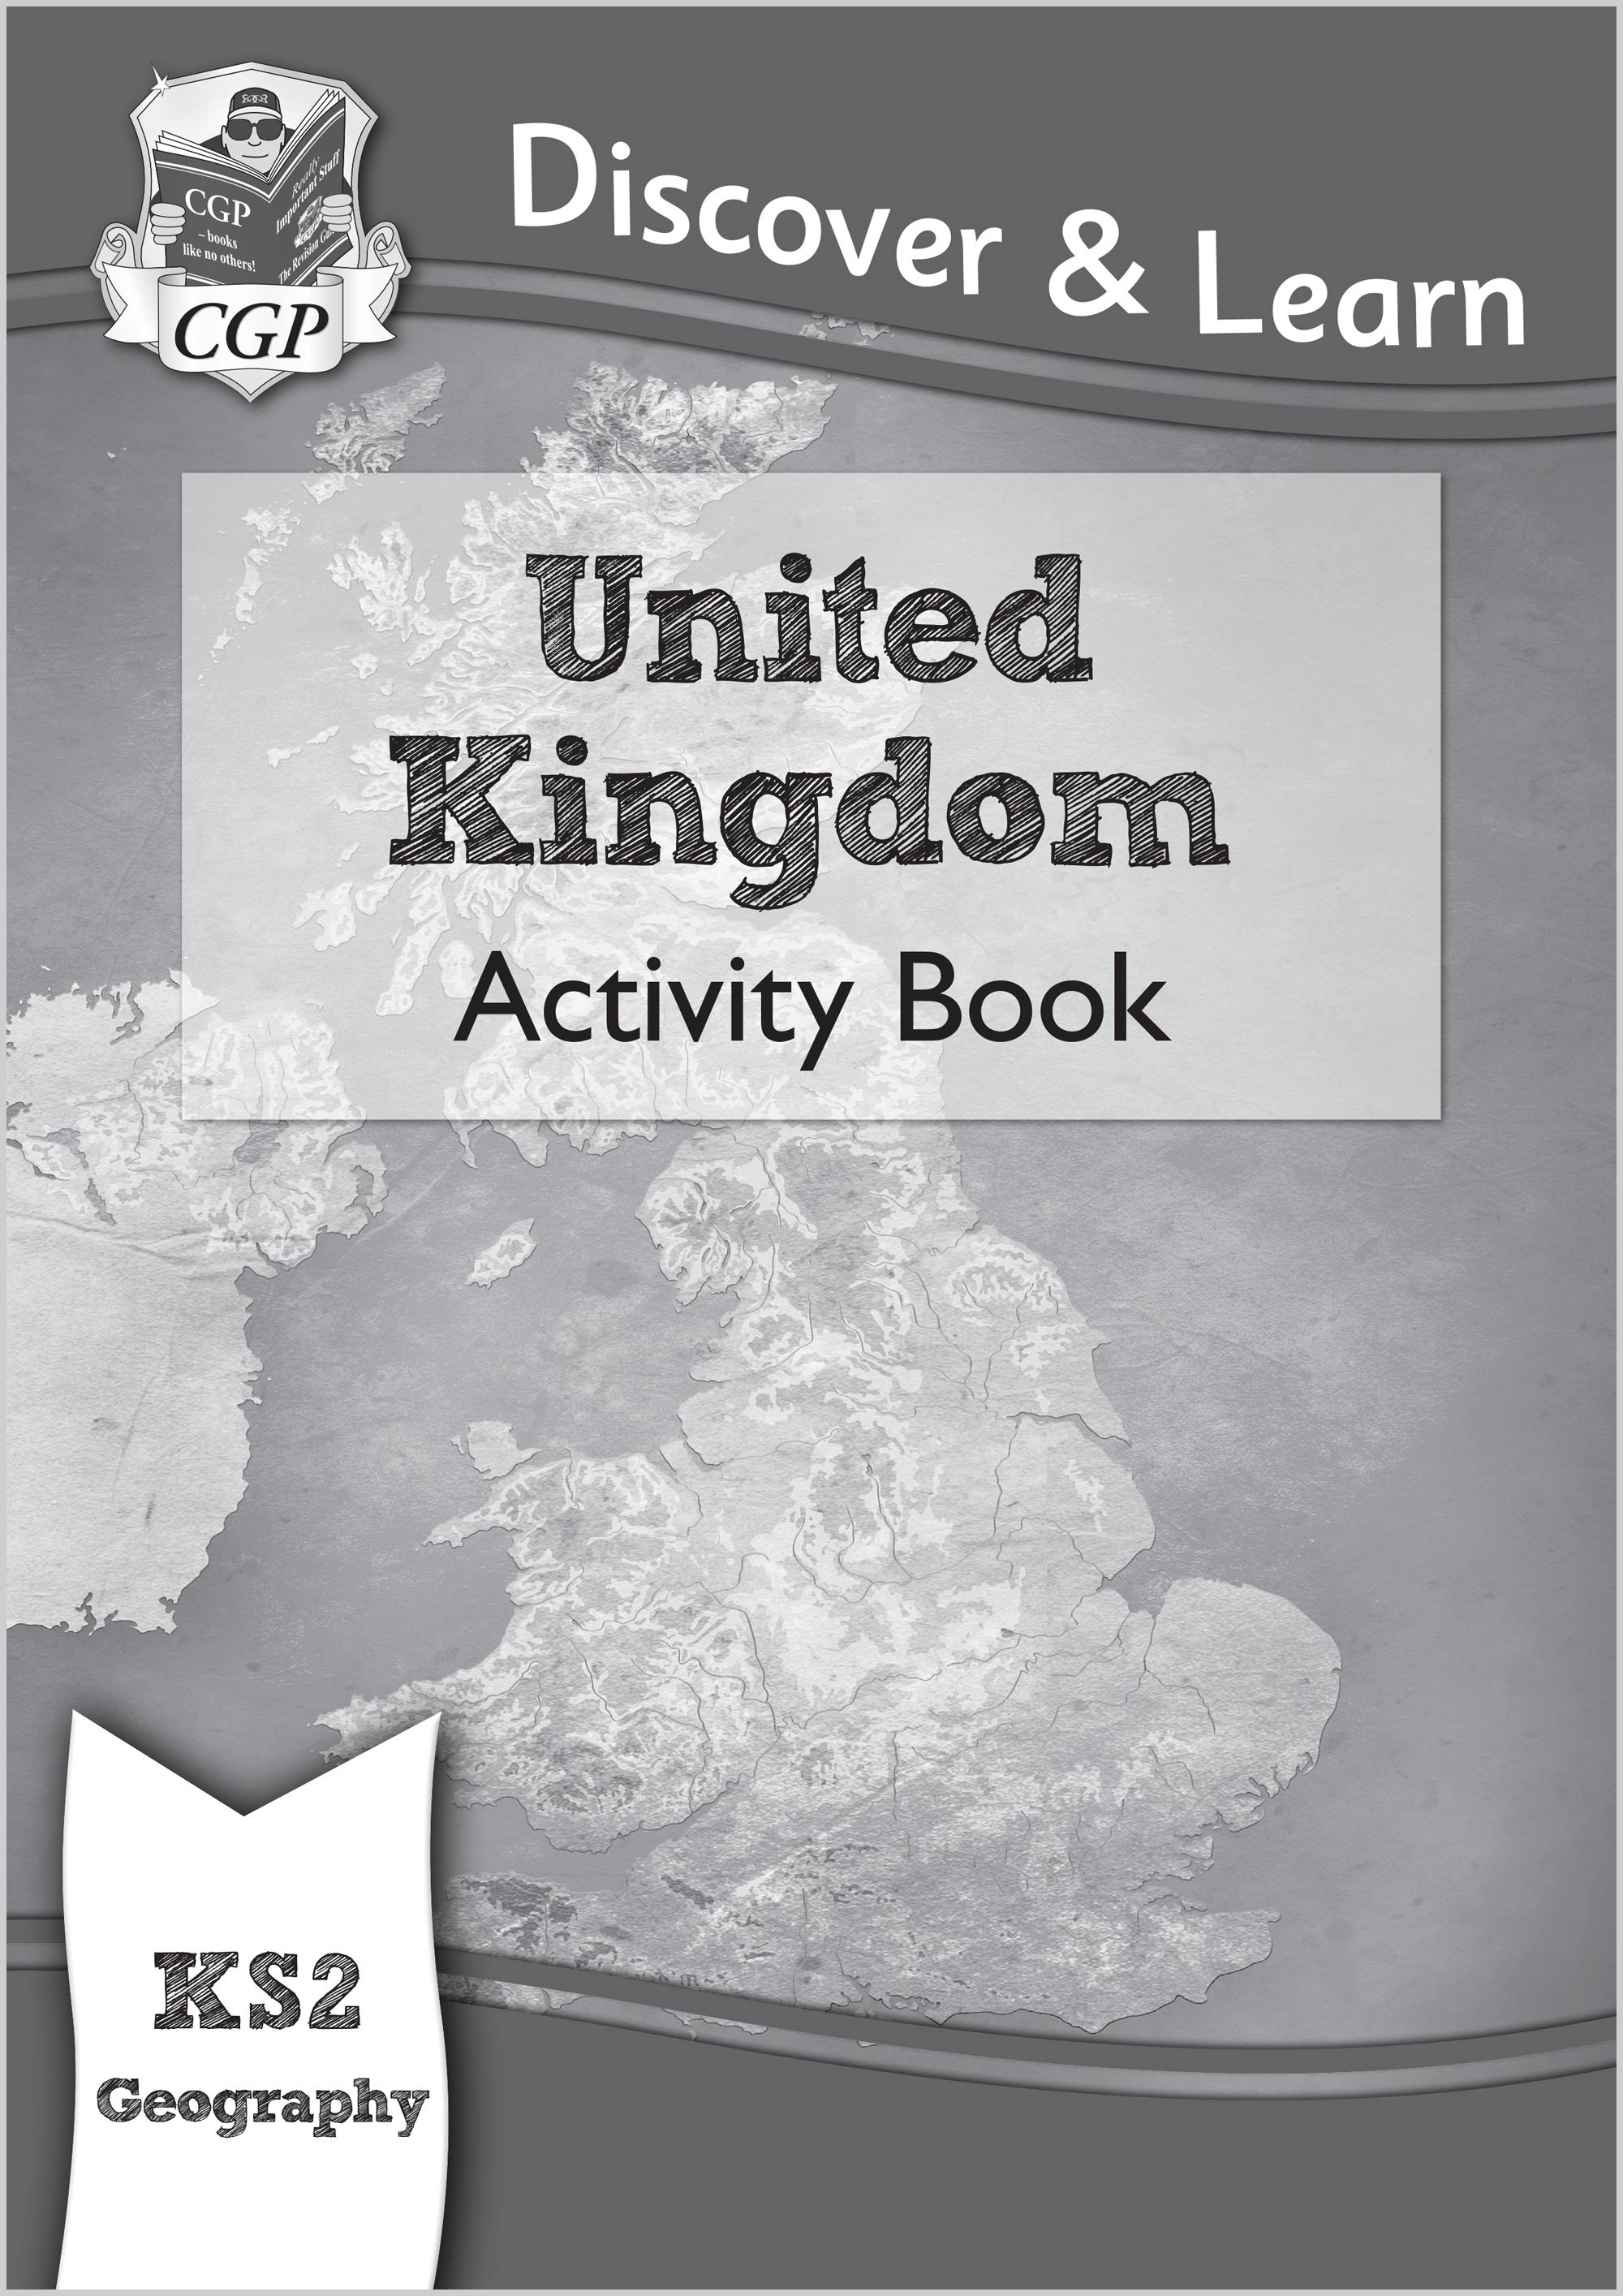 GUW21 - KS2 Discover & Learn: Geography - United Kingdom Activity Book